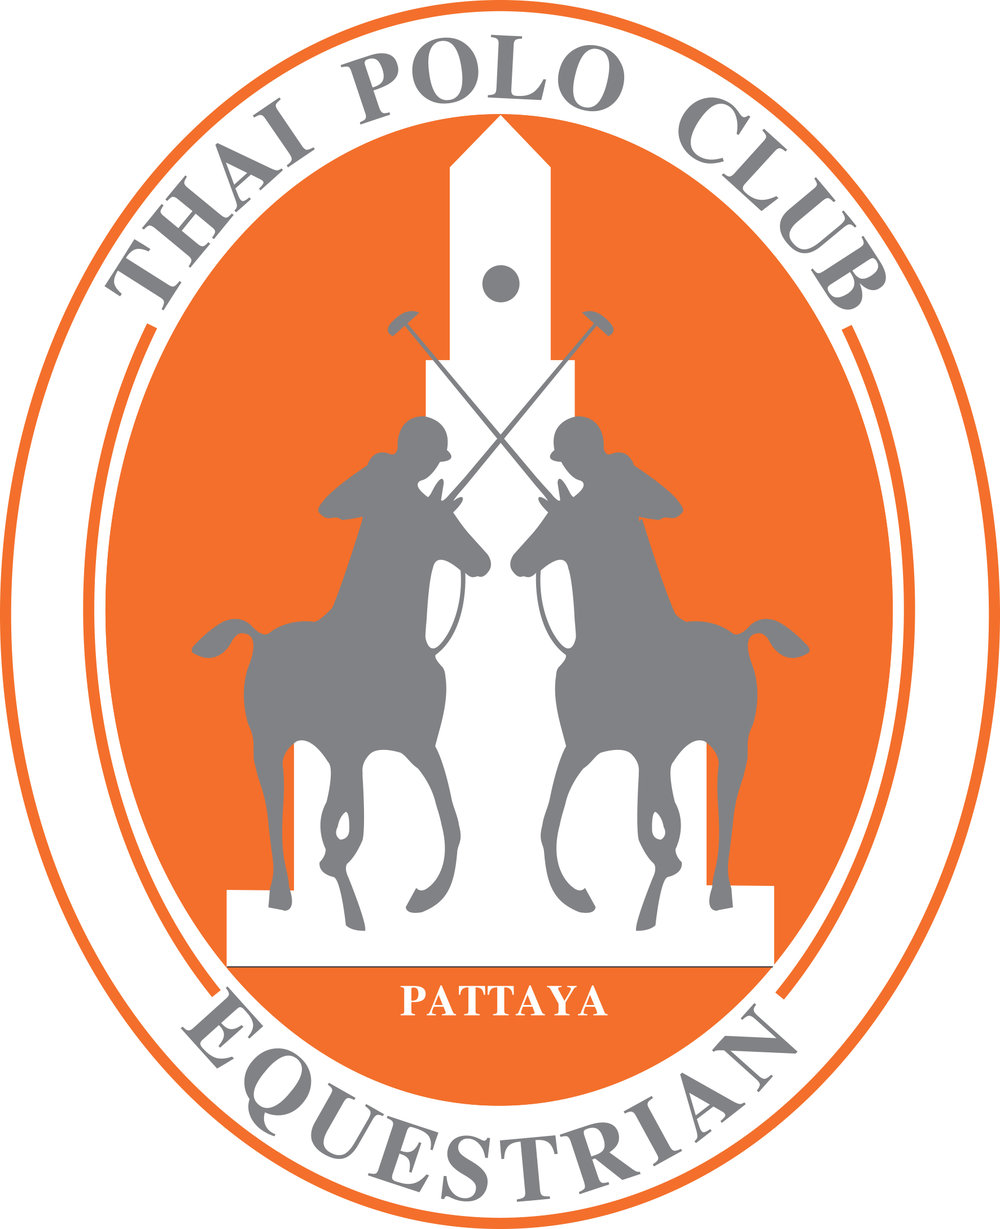 thai polo club-logo-grey60.jpg